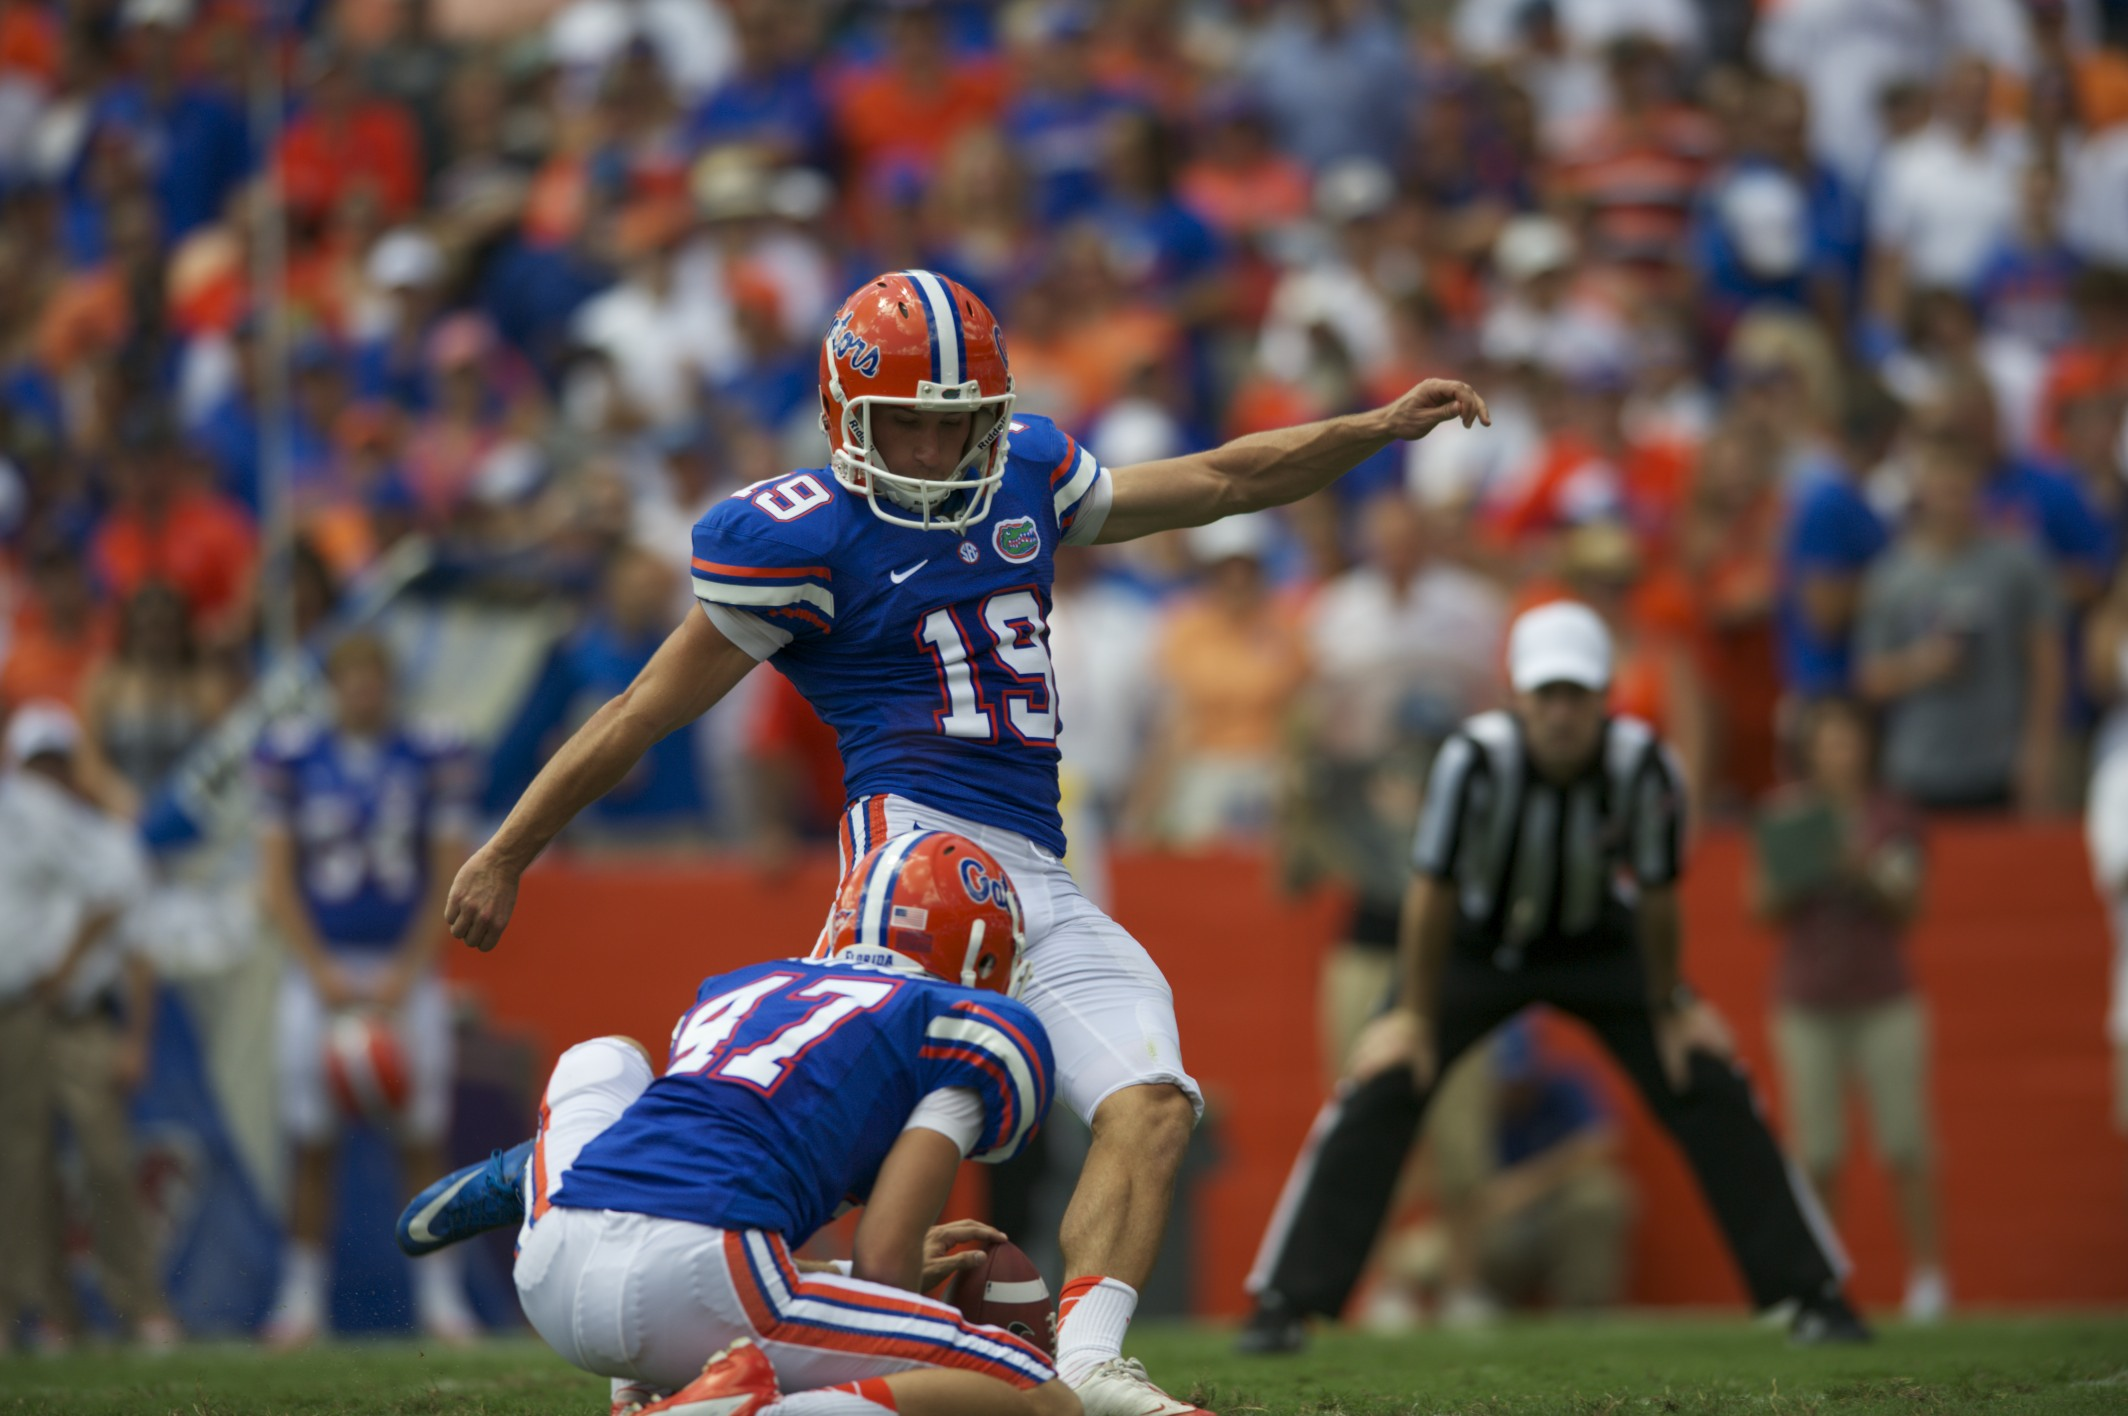 Kicker Caleb Sturgis scores a 27-yard field goal in the first half to put the Gators on the board.